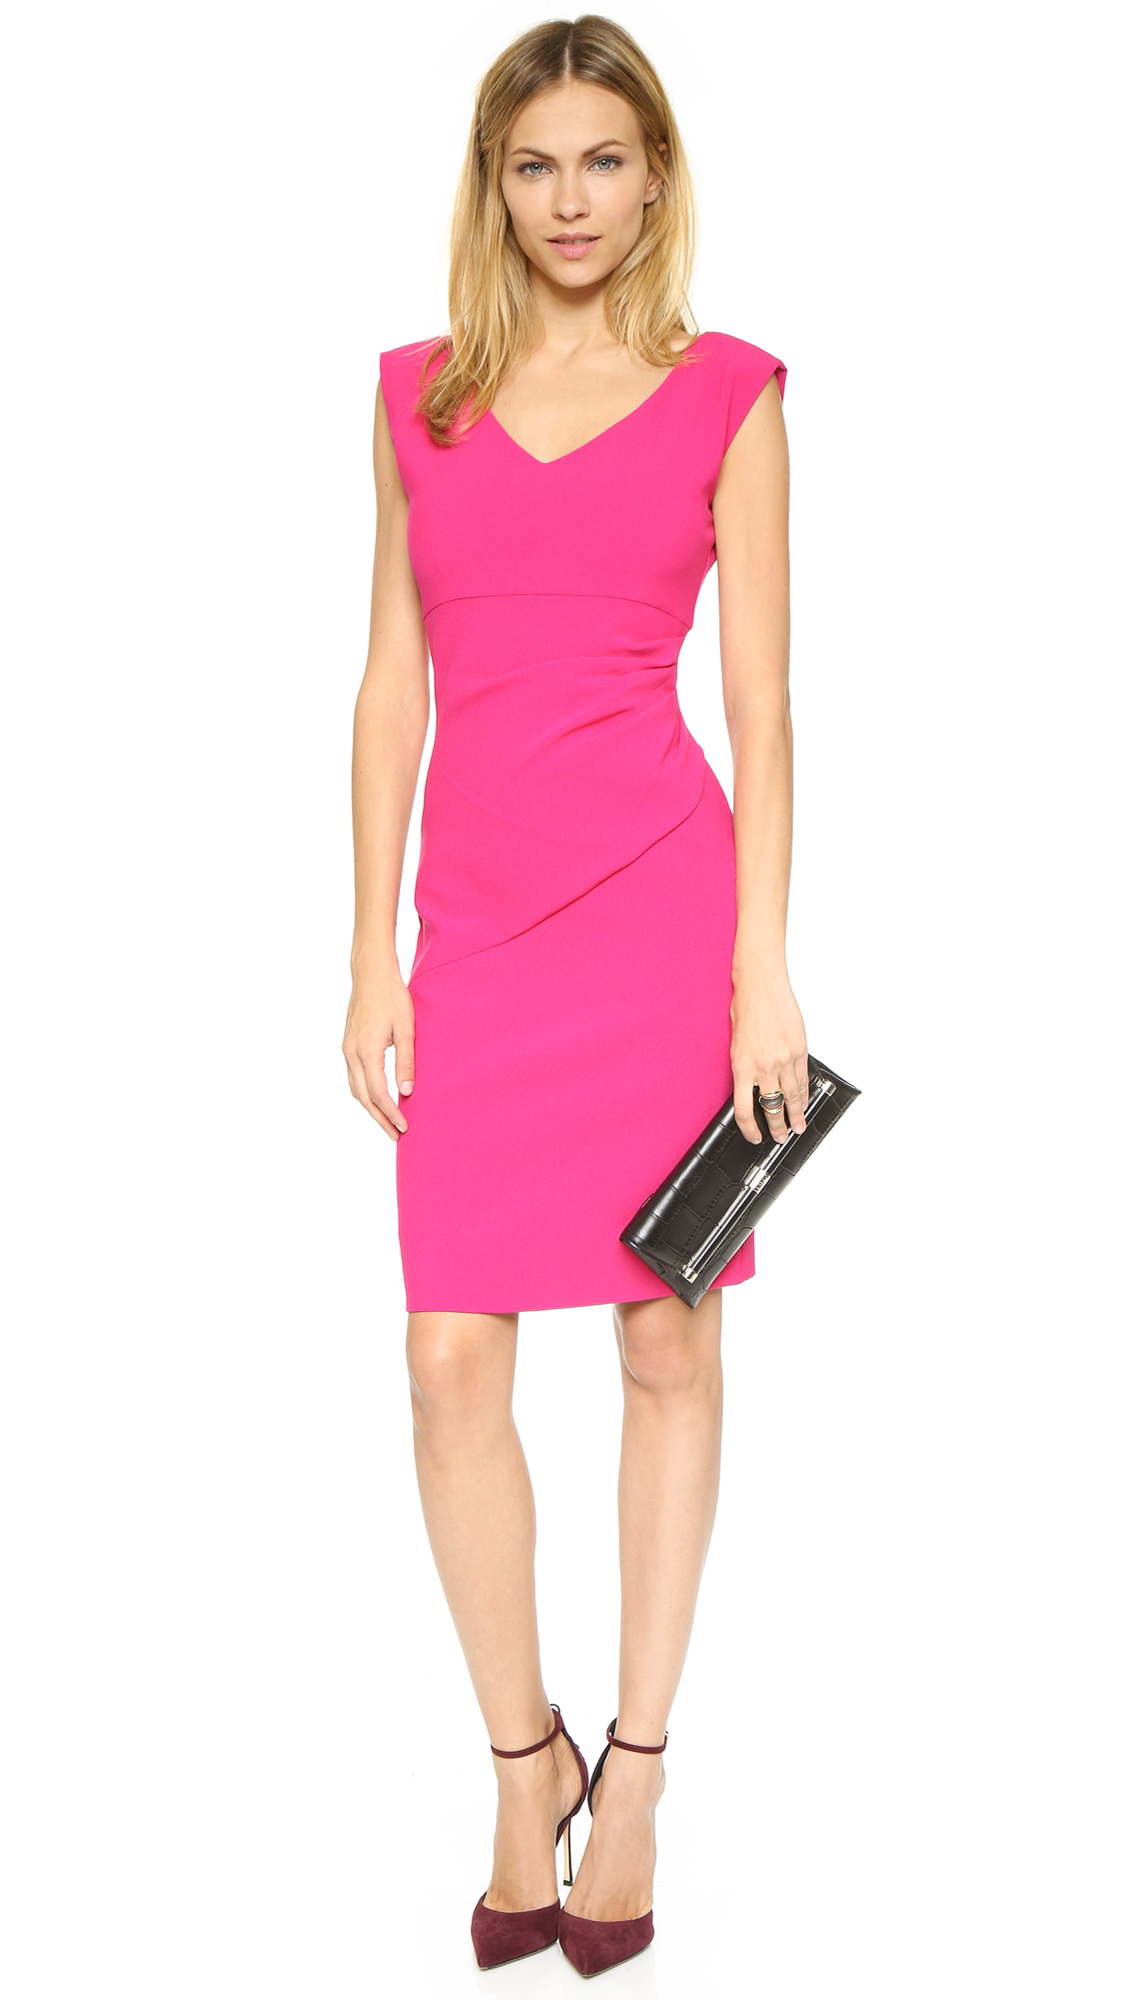 Lyst diane von furstenberg bevin dress dragonfruit in pink for Diane von furstenberg clothes